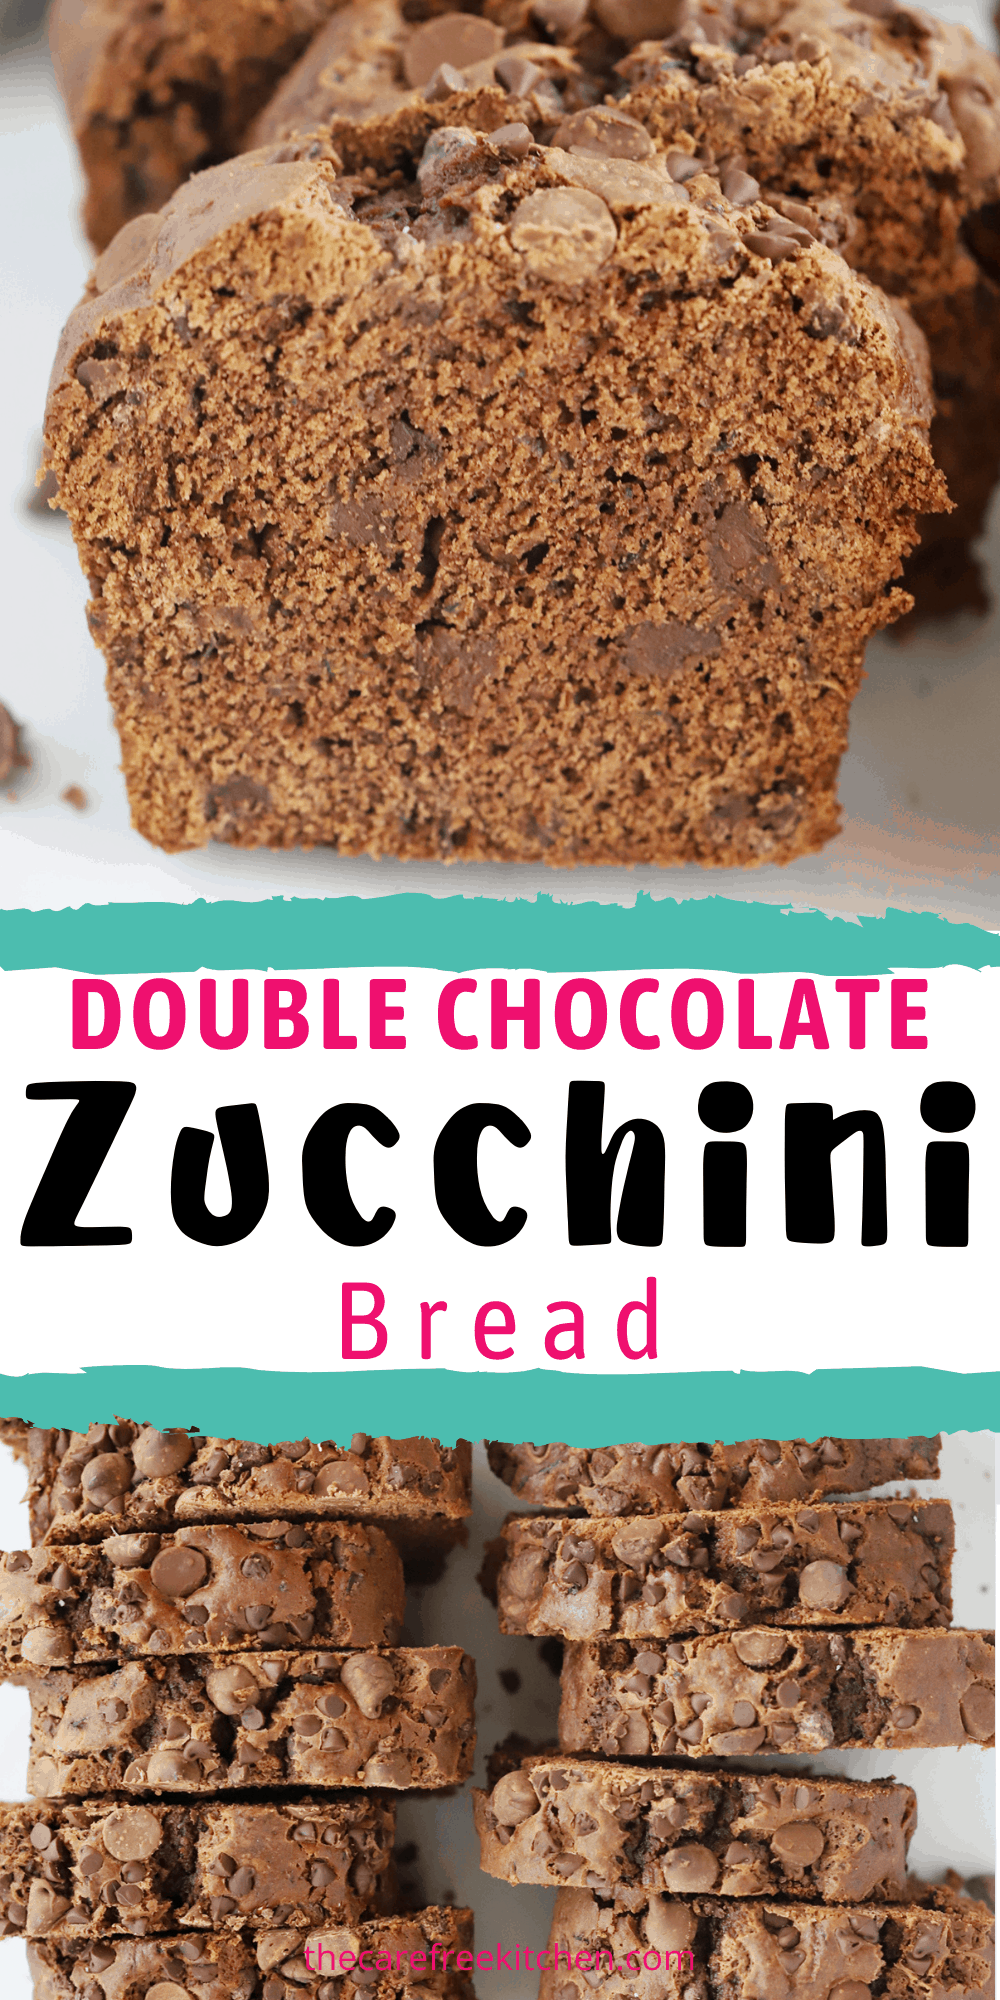 Pinterest pin for Double Chocolate Zucchini Bread.